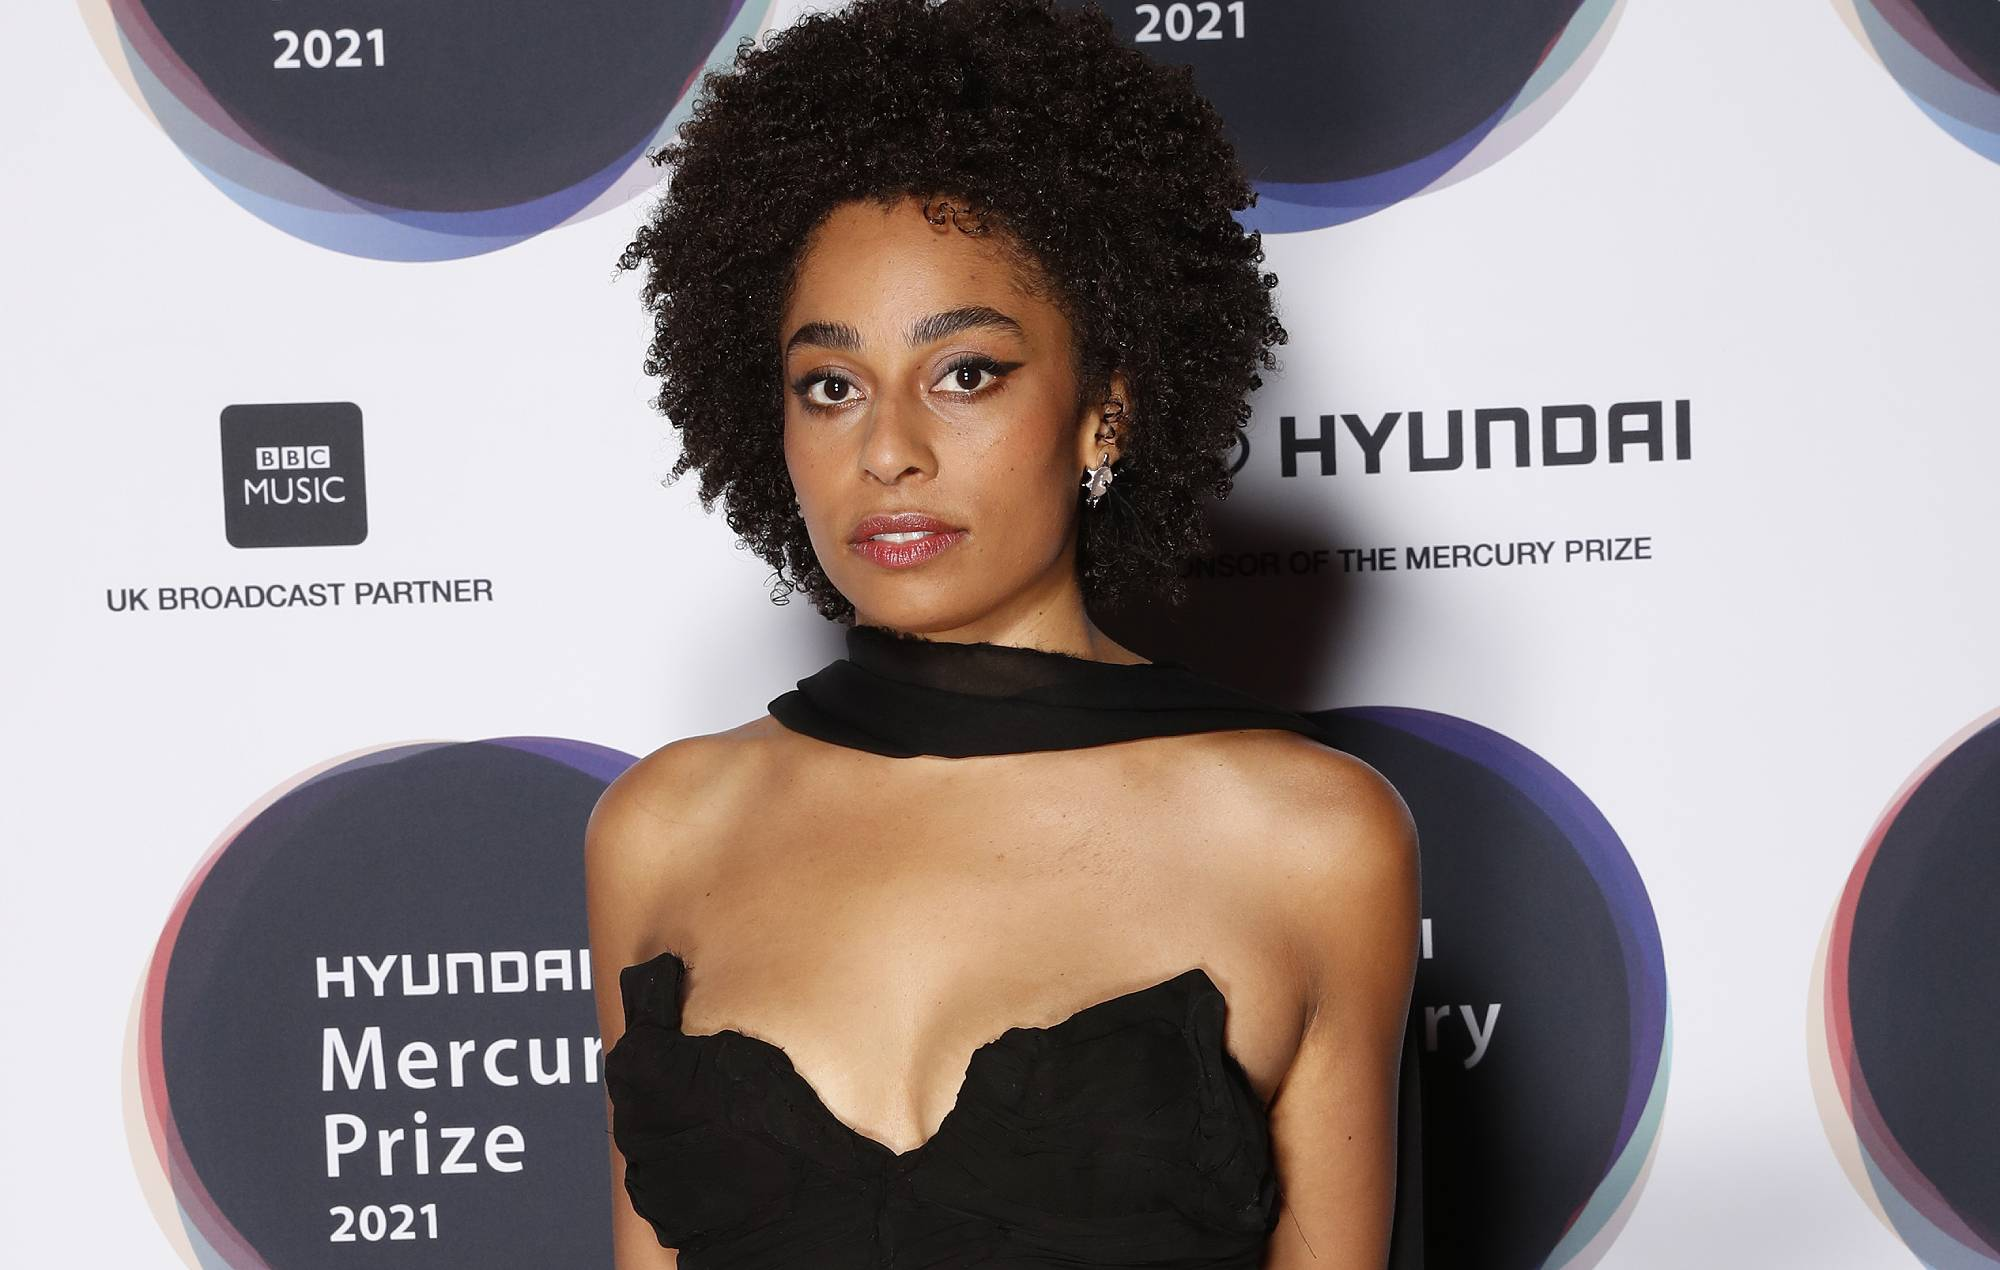 Celeste attends the Hyundai Mercury Music Prize 2021 at the Eventim Apollo, Hammersmith on September 09, 2021 in London, England. (Photo by JMEnternational/Getty Images)